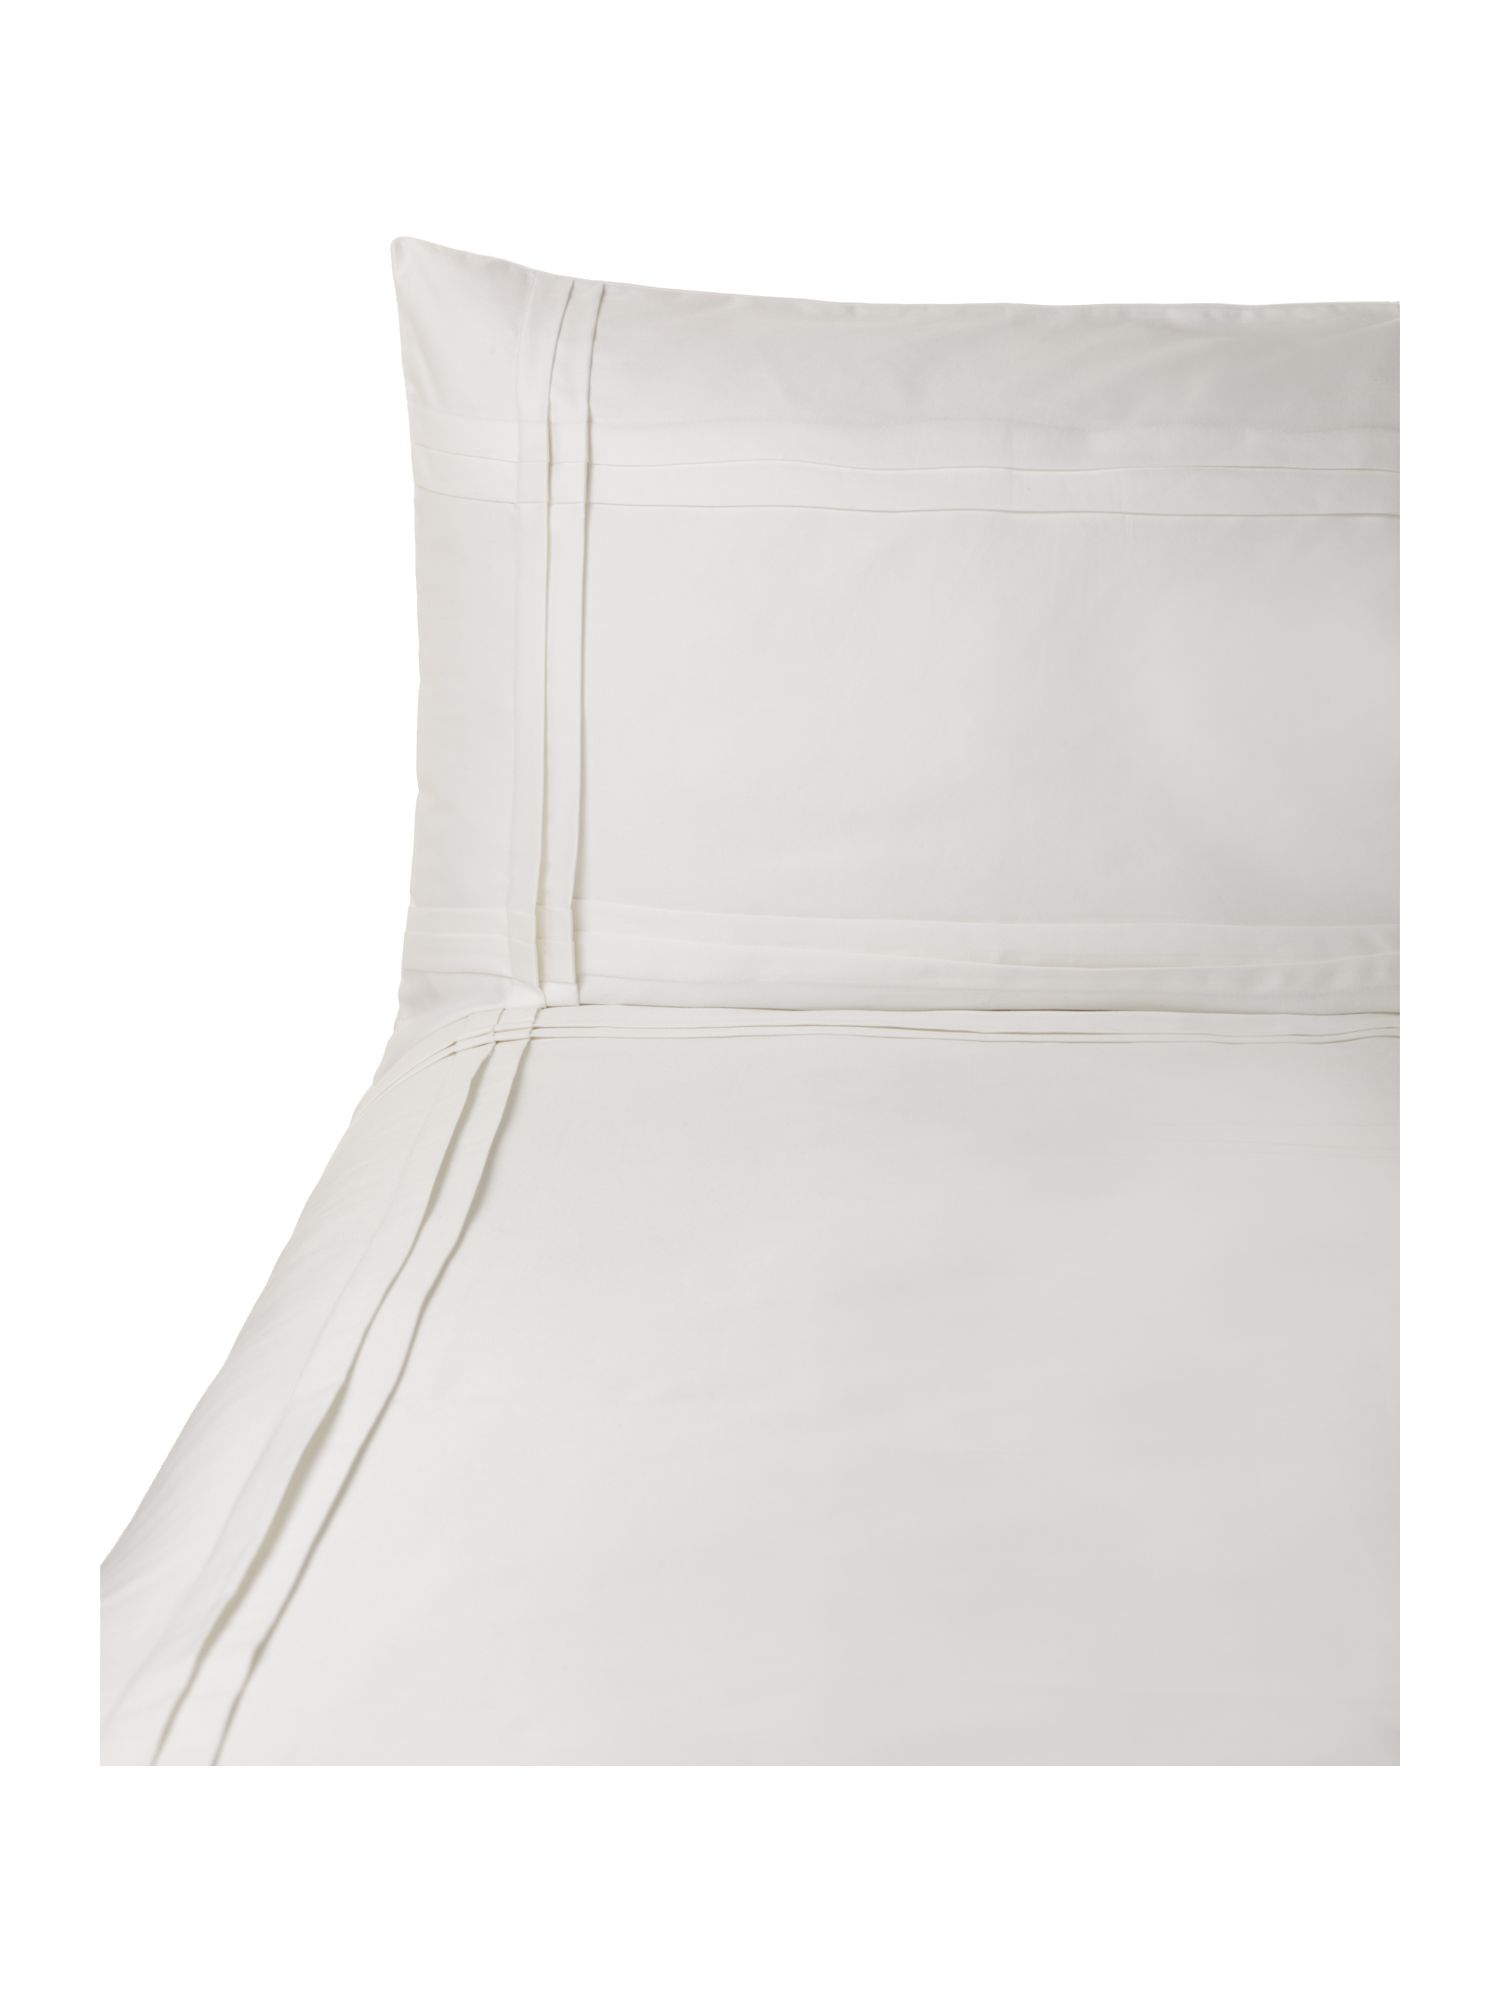 Criss Cross Pleat single duvet cover set white